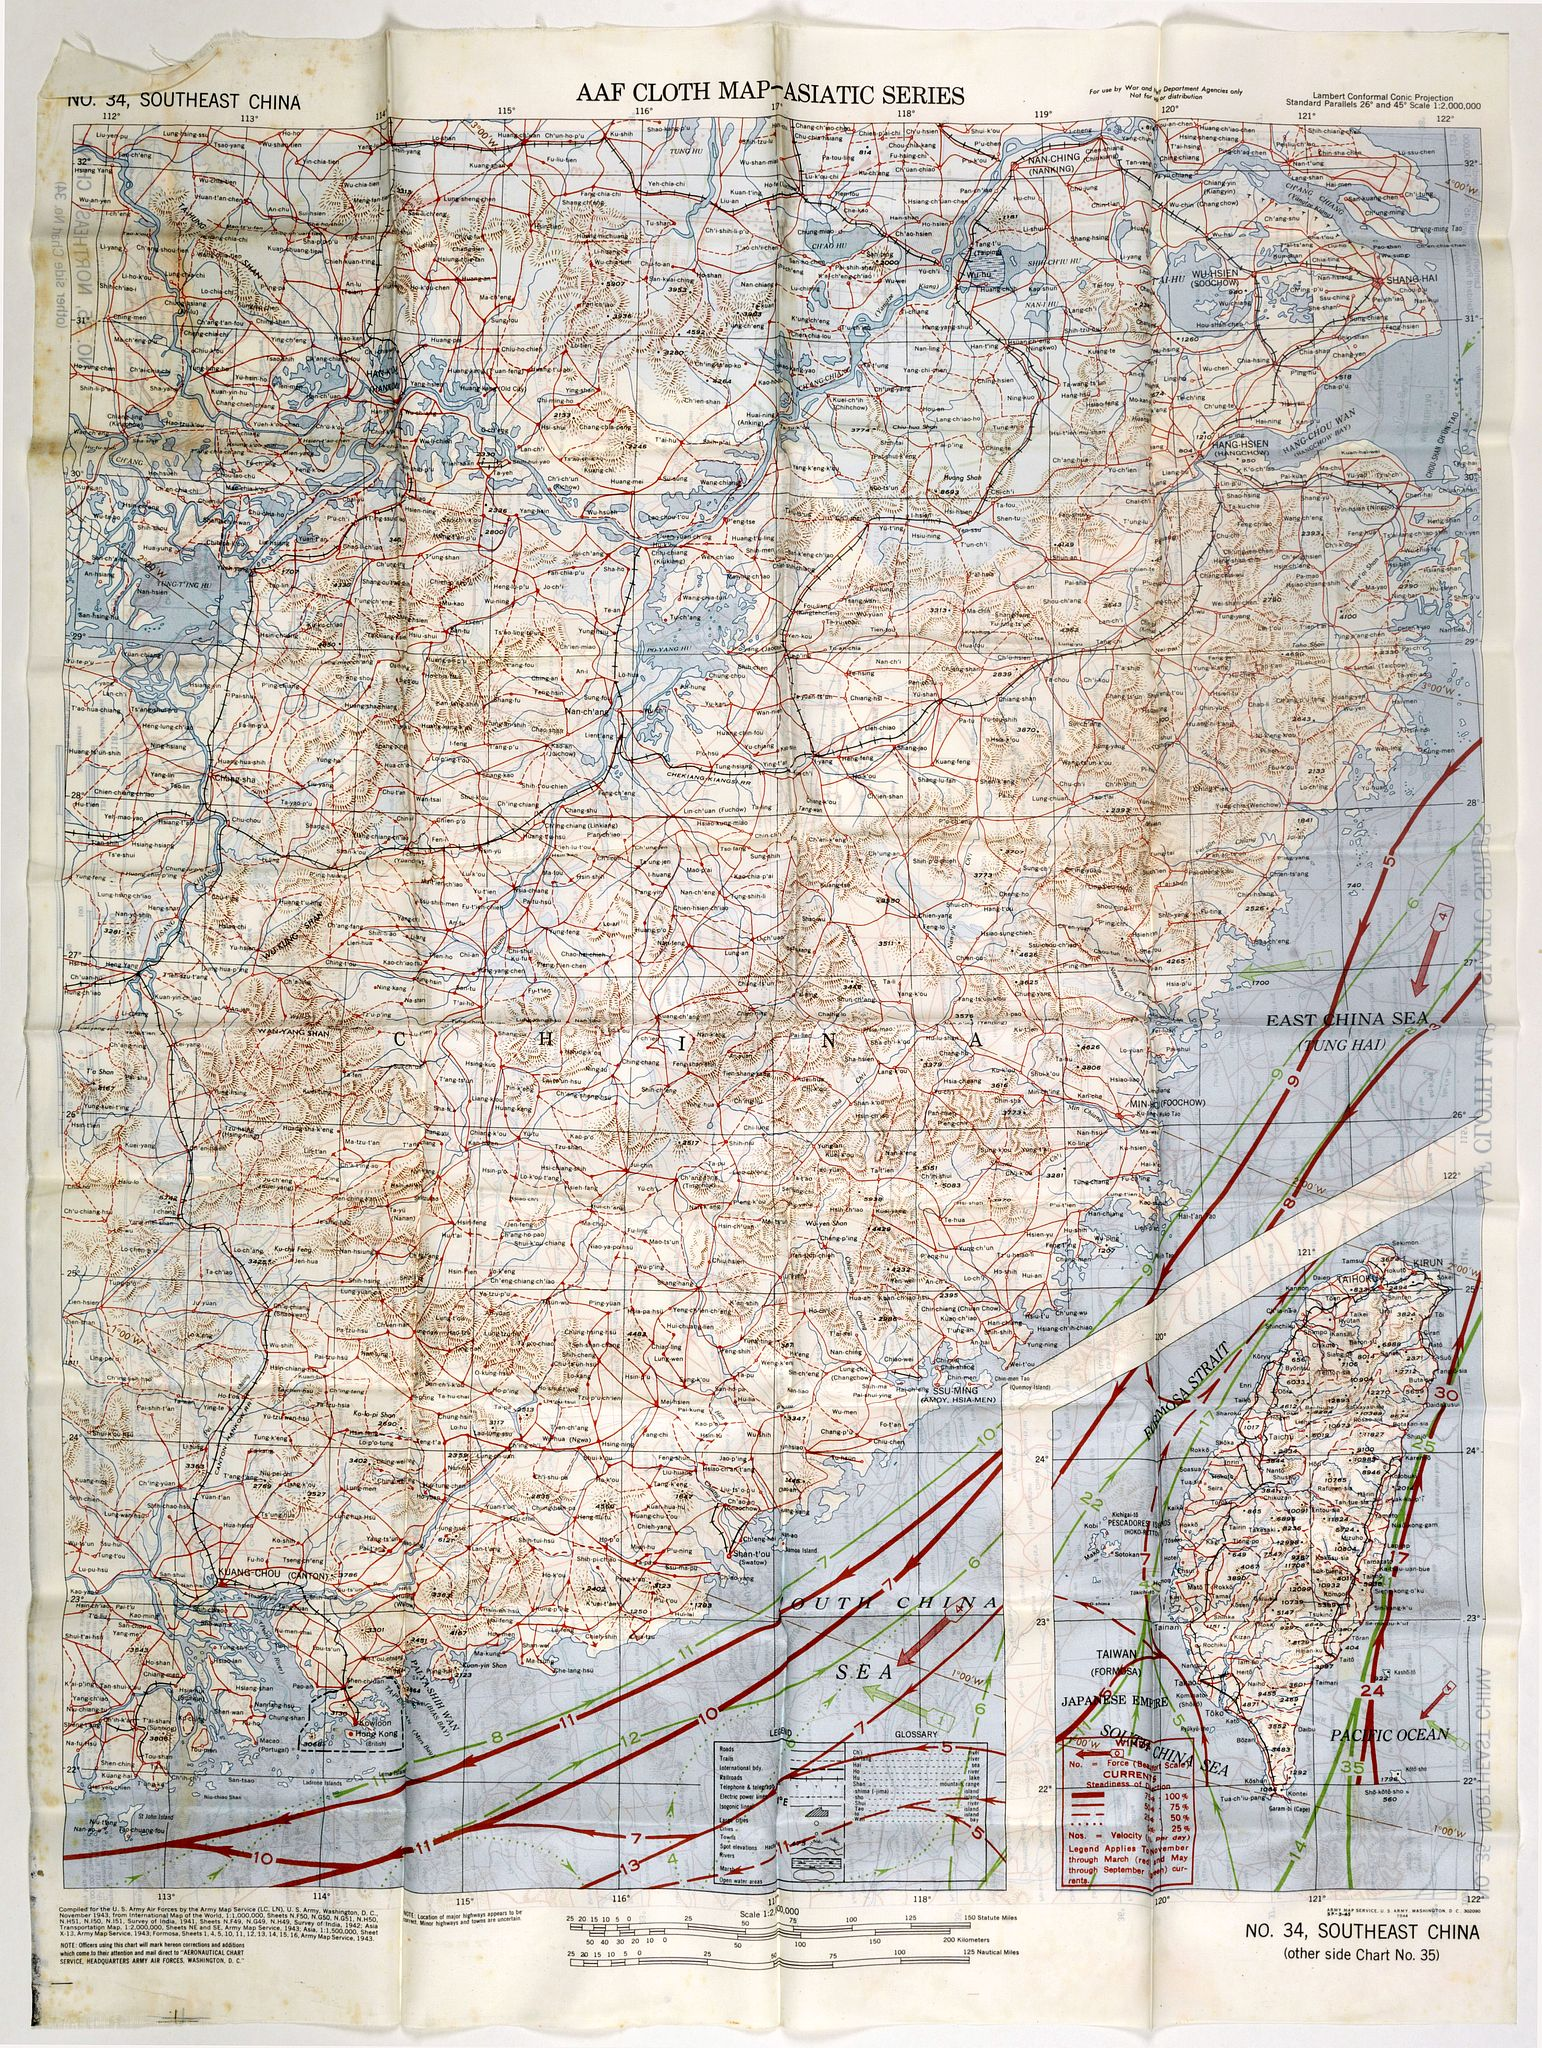 ARMY MAP SERVICE -  [Escape map] N°34 Southeast Asia + Northeast Asia.